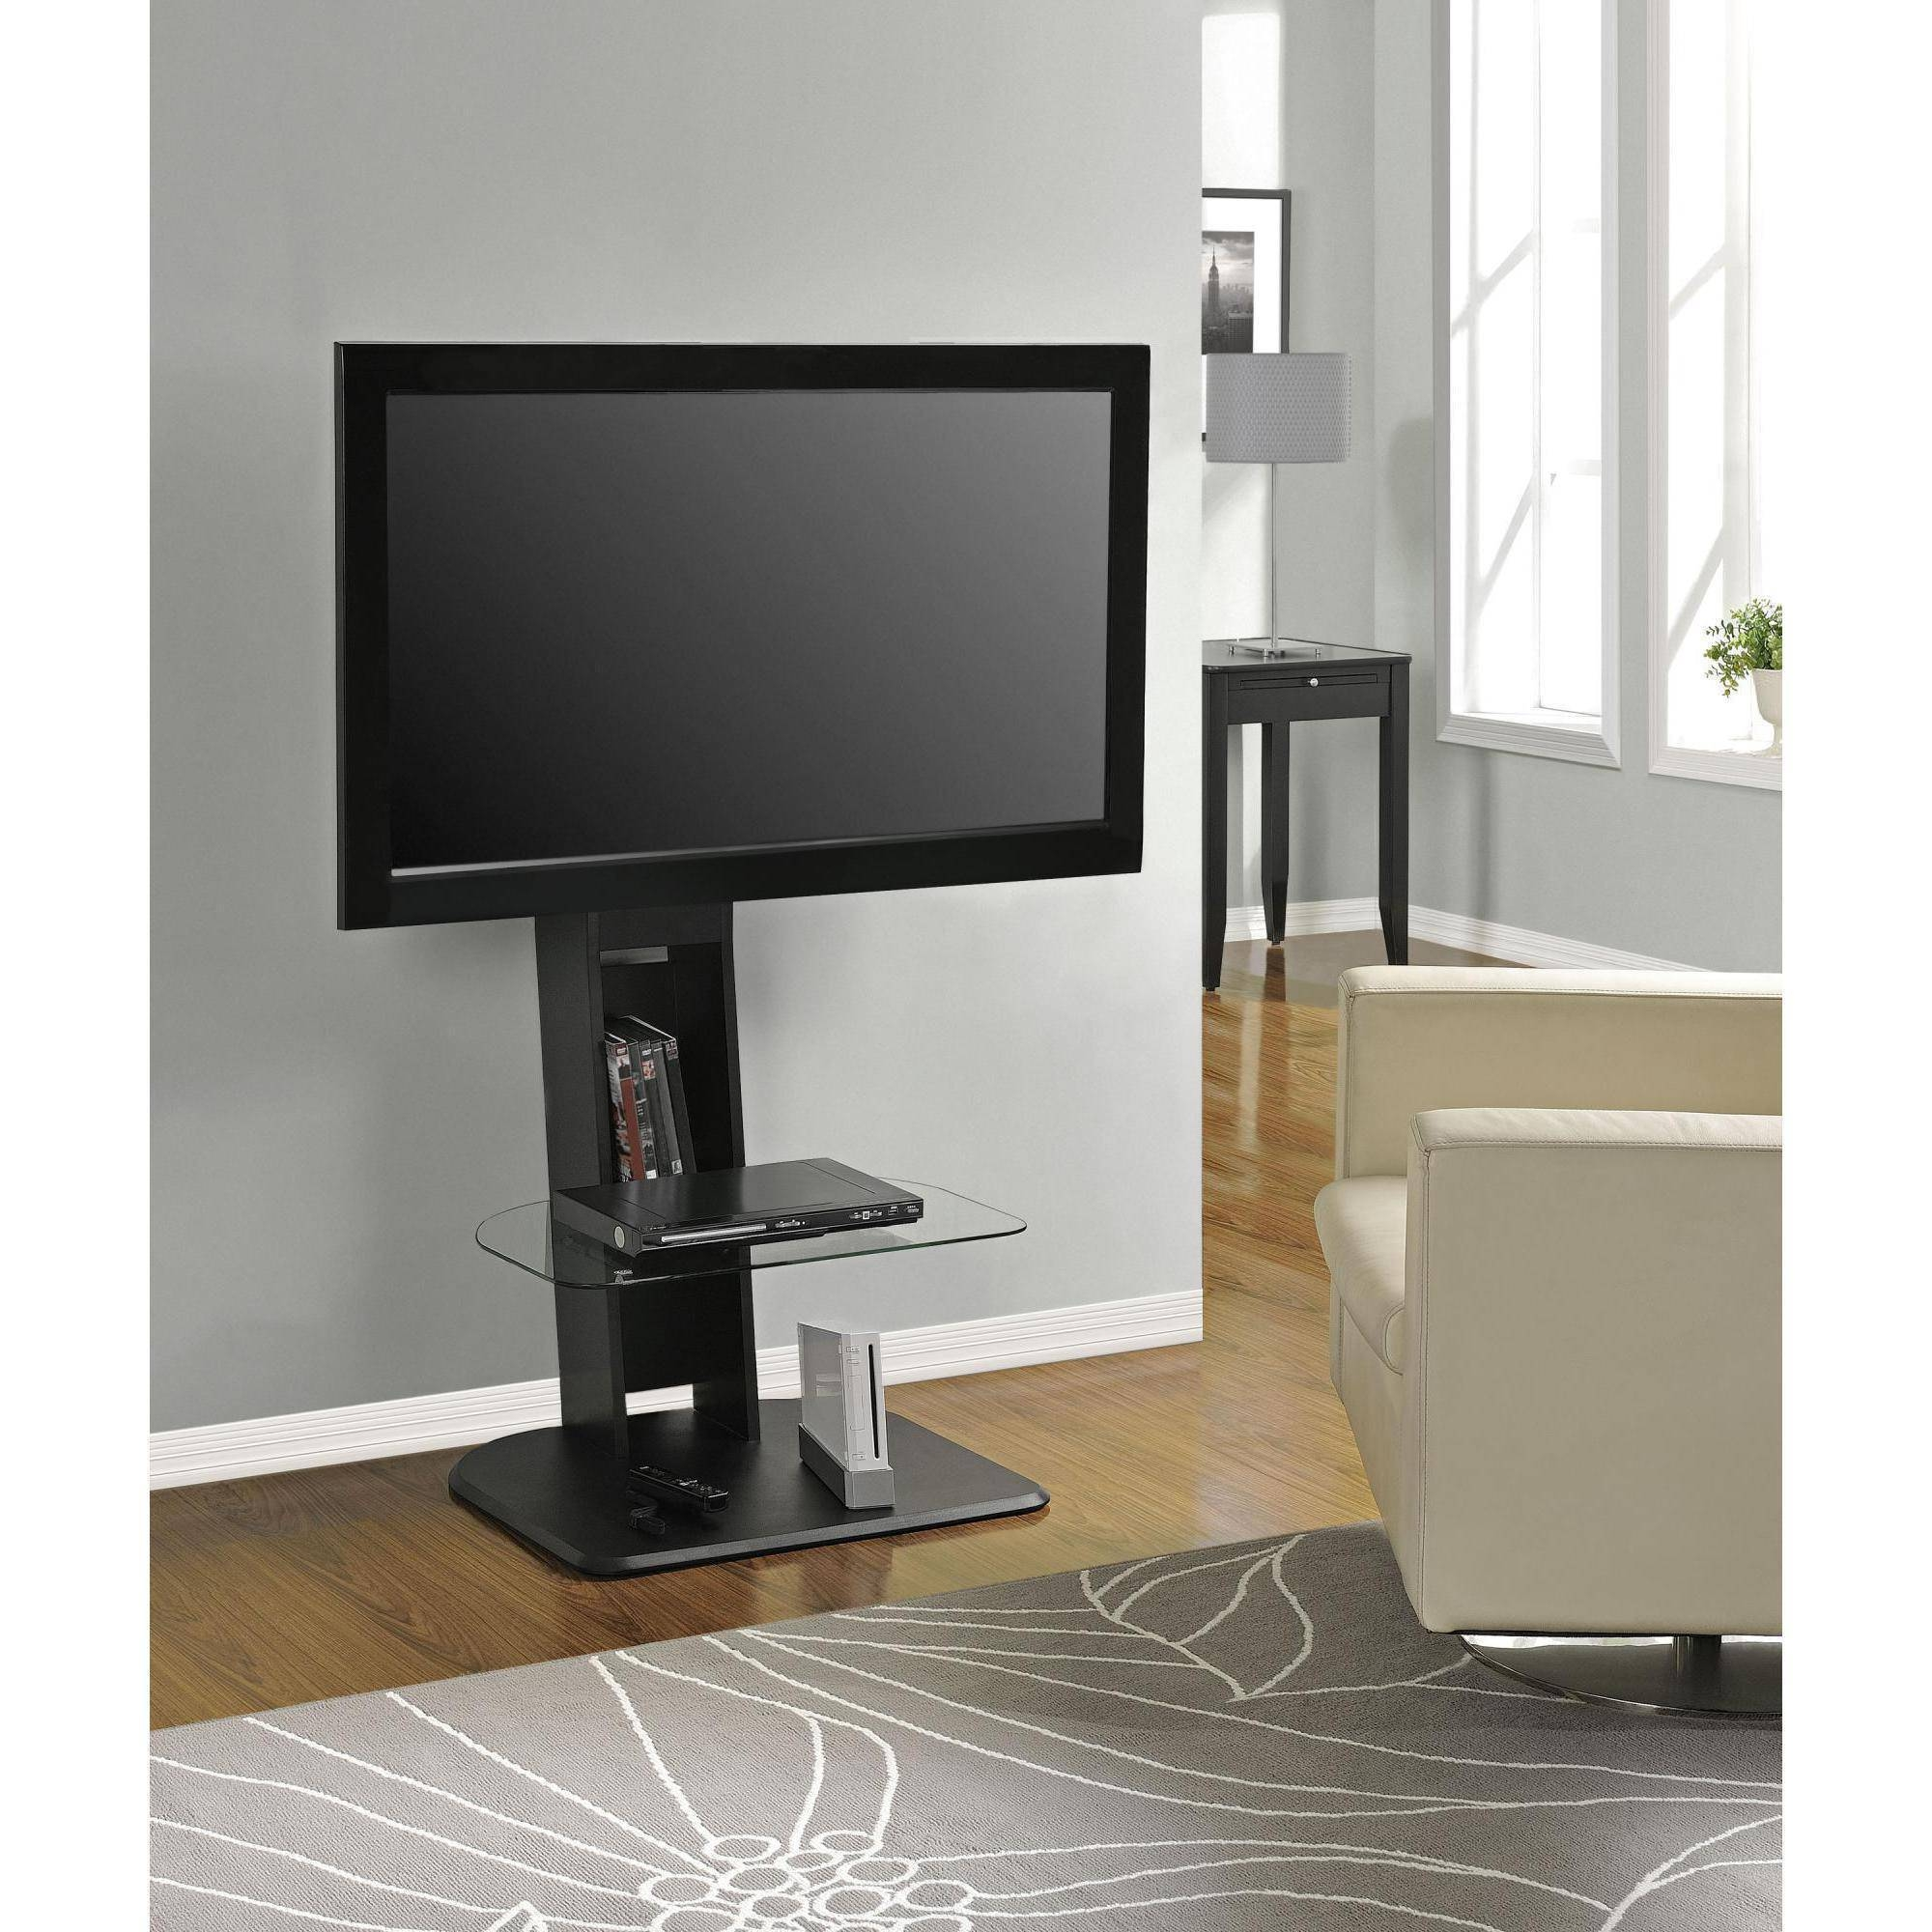 "Ameriwood Home Galaxy Tv Stand With Mount For Tvs Up To 50"", Black inside Tv Stands for Tube Tvs (Image 1 of 15)"